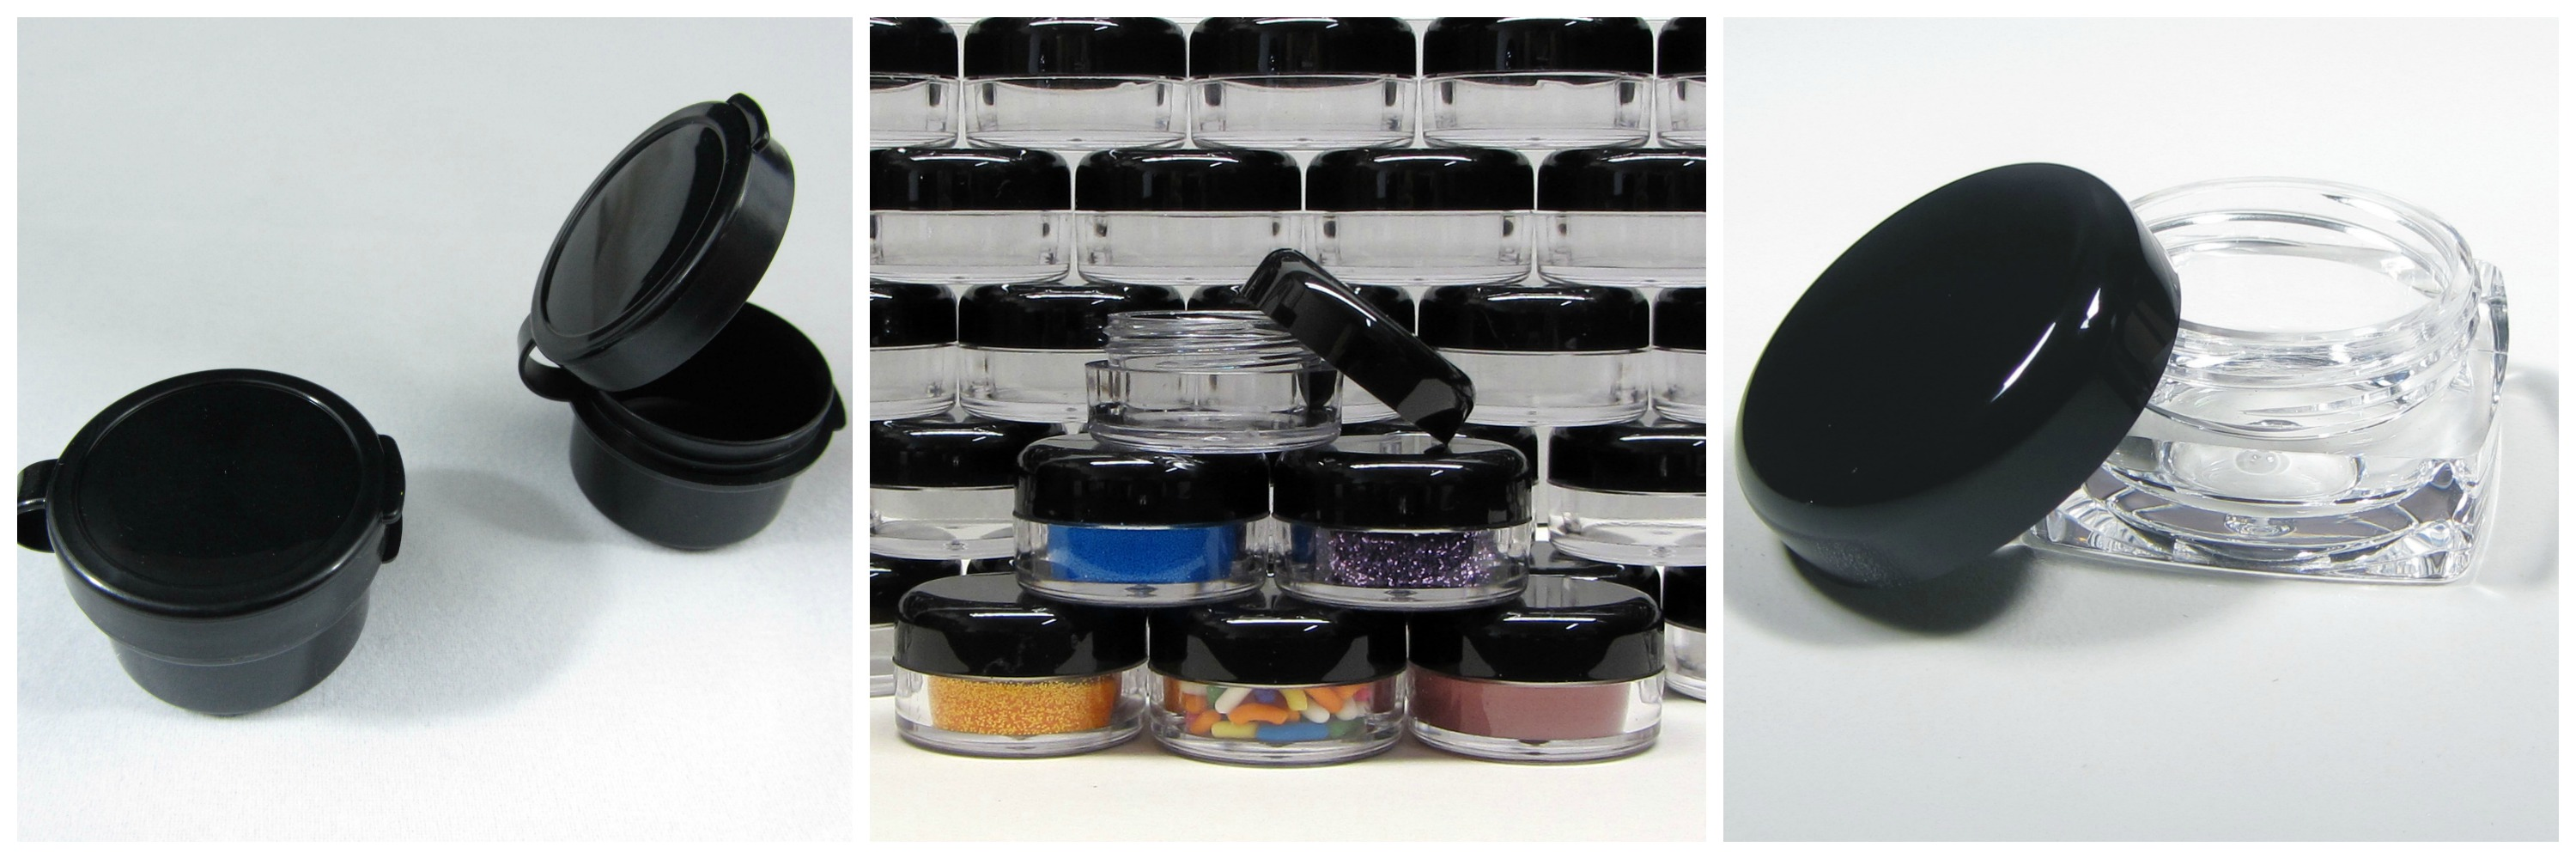 5-gram-cosmetic-jars-beauty-makeup-supply.jpg